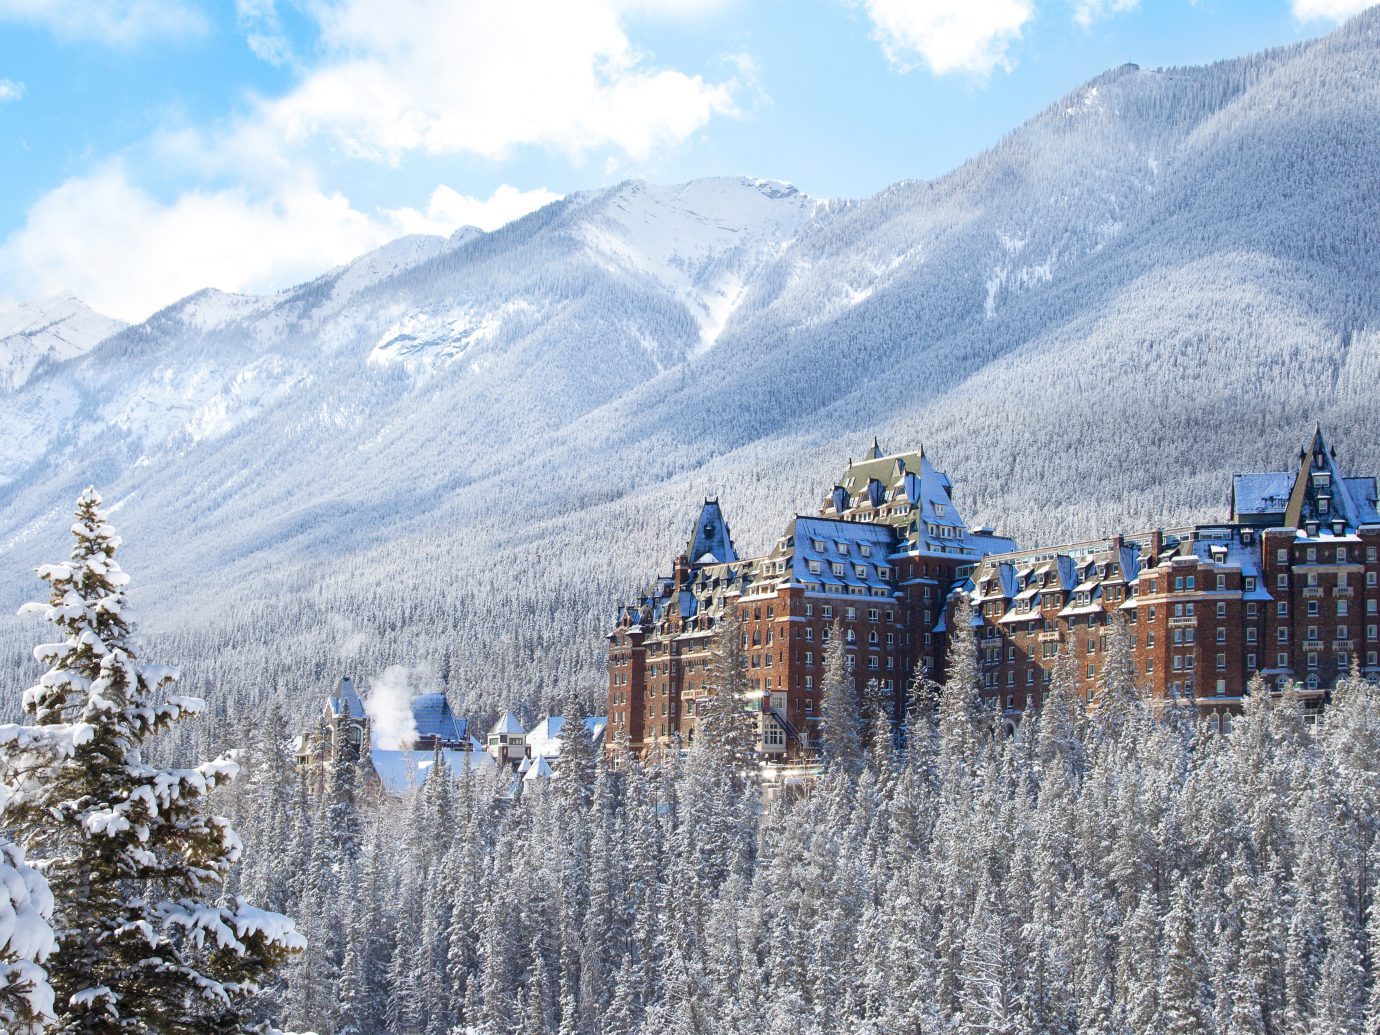 Alberta Architecture Boutique Hotels Buildings Canada Exterior Hotels Mountains Outdoors Resort Scenic views Trip Ideas outdoor mountain sky mountainous landforms snow Winter Nature mountain range wilderness weather season alps frost ridge highland